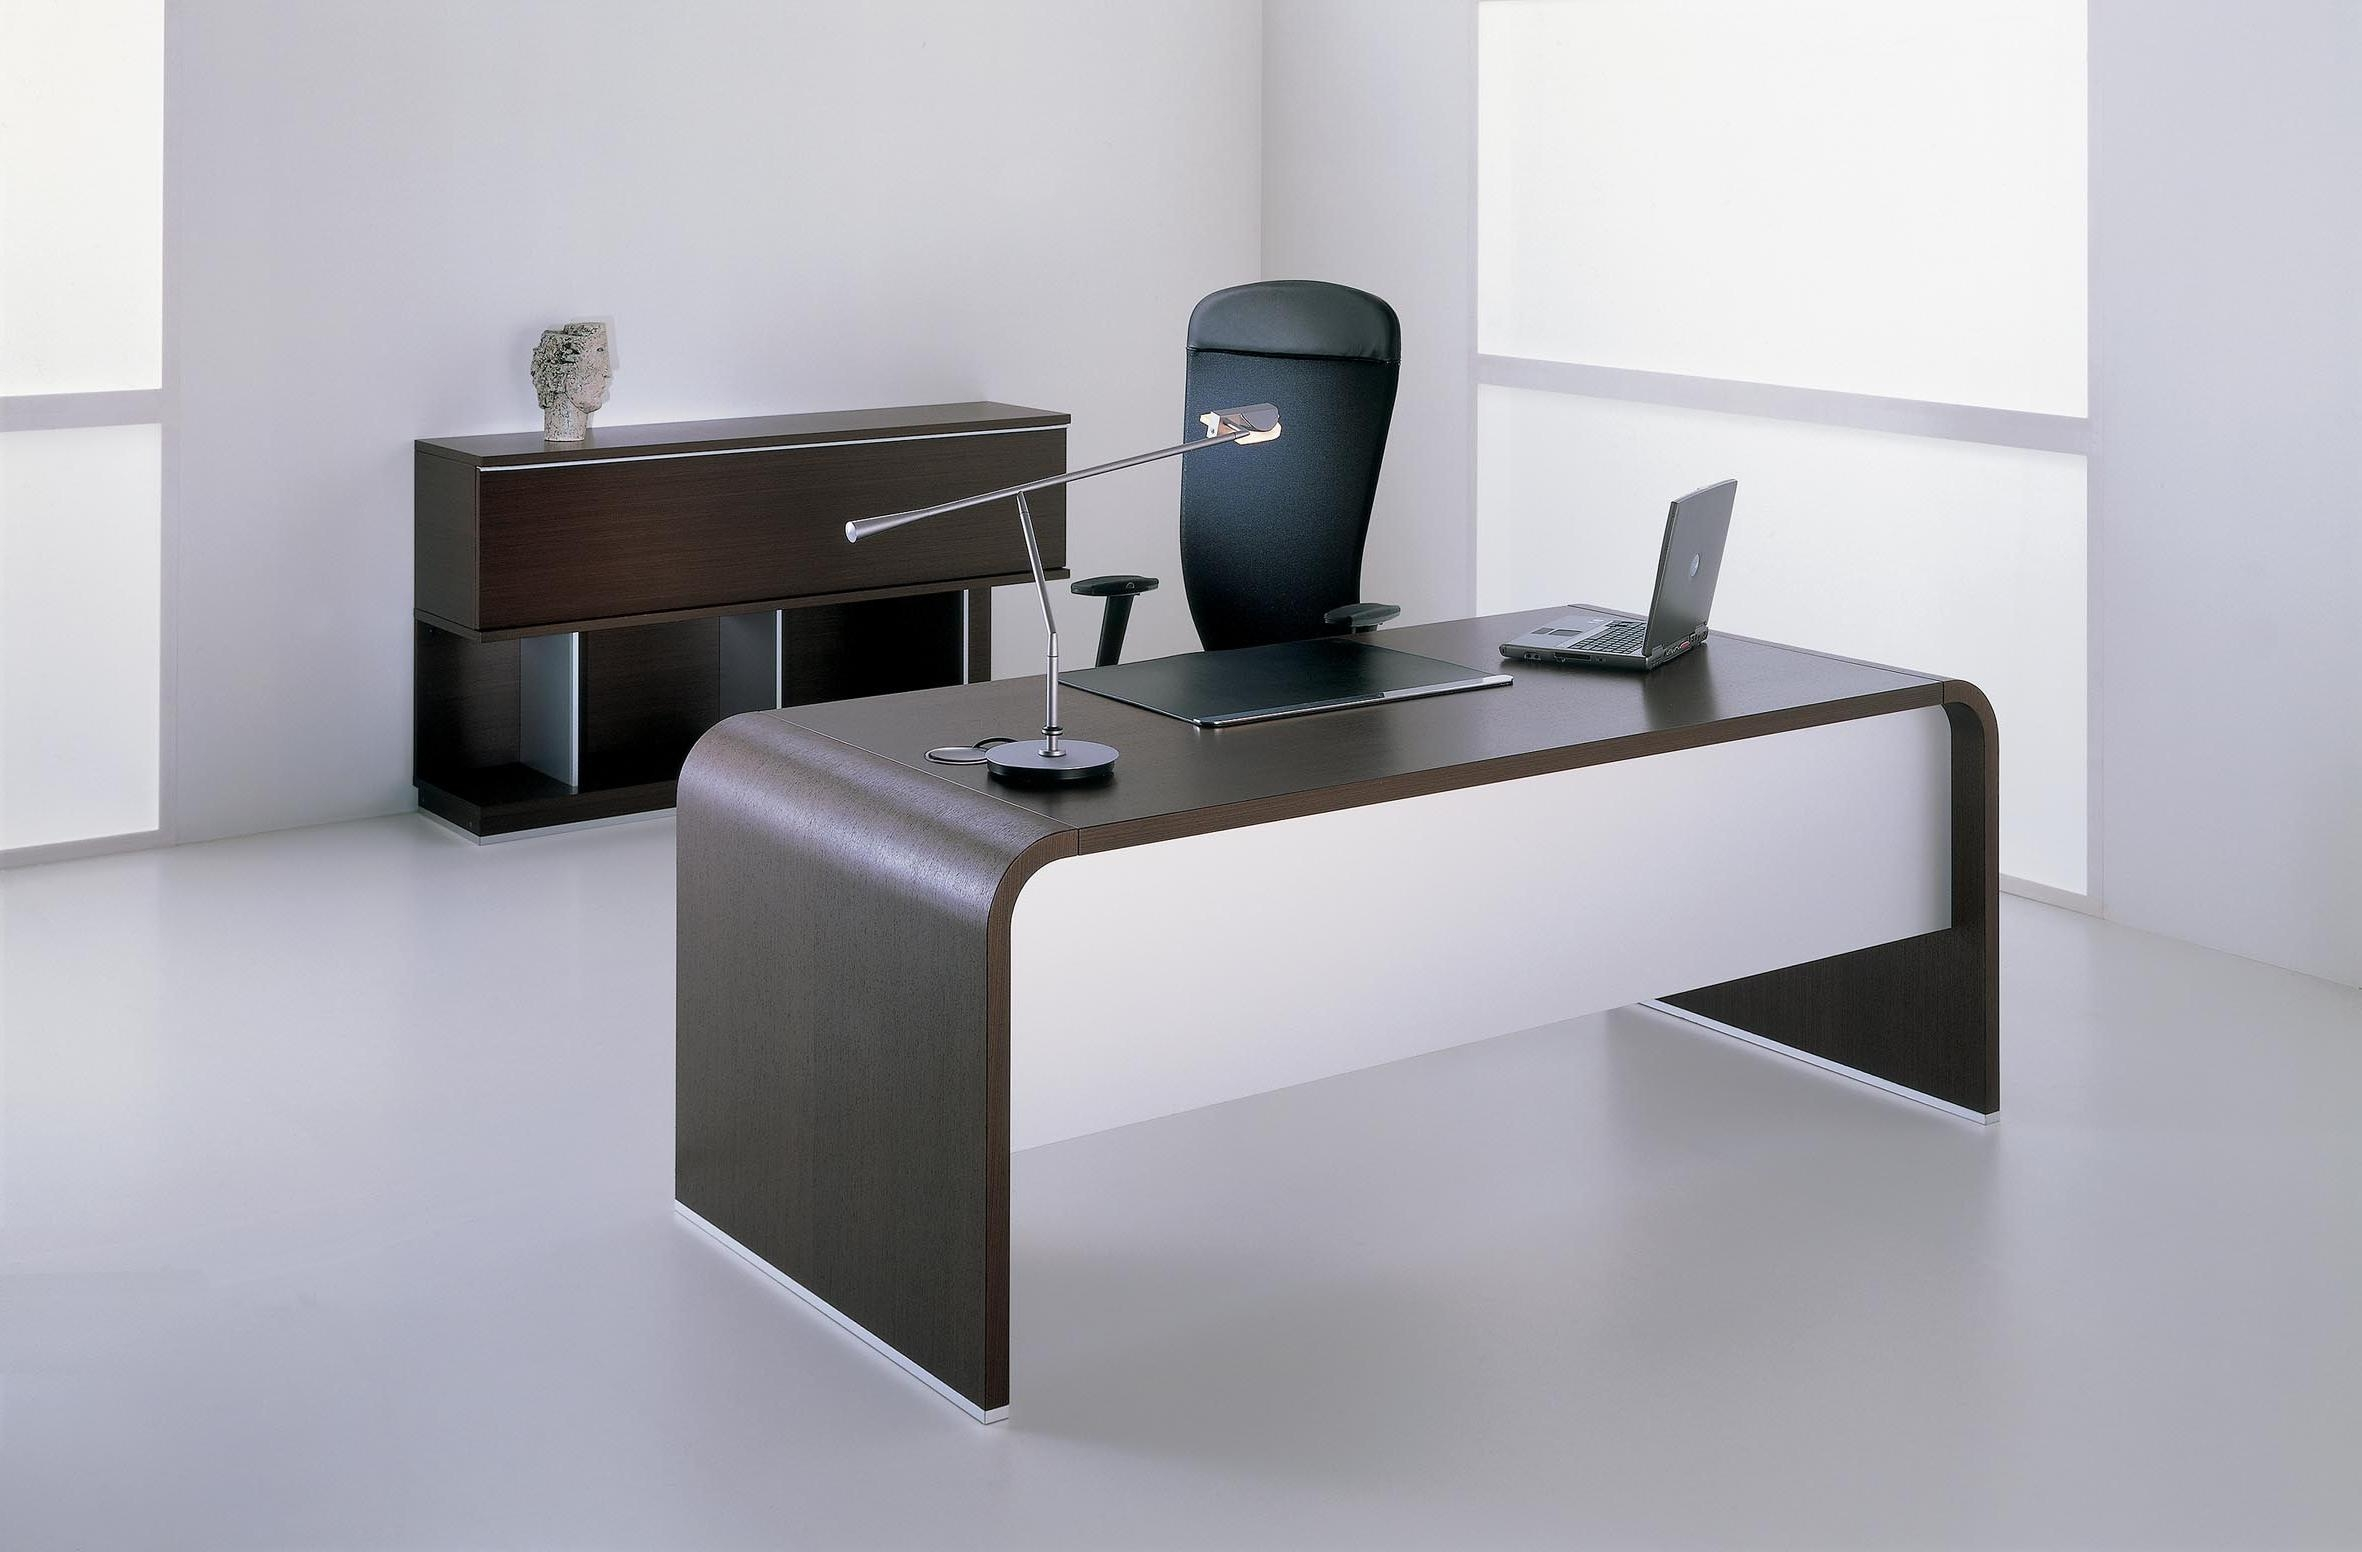 Difference Between Table And Desk